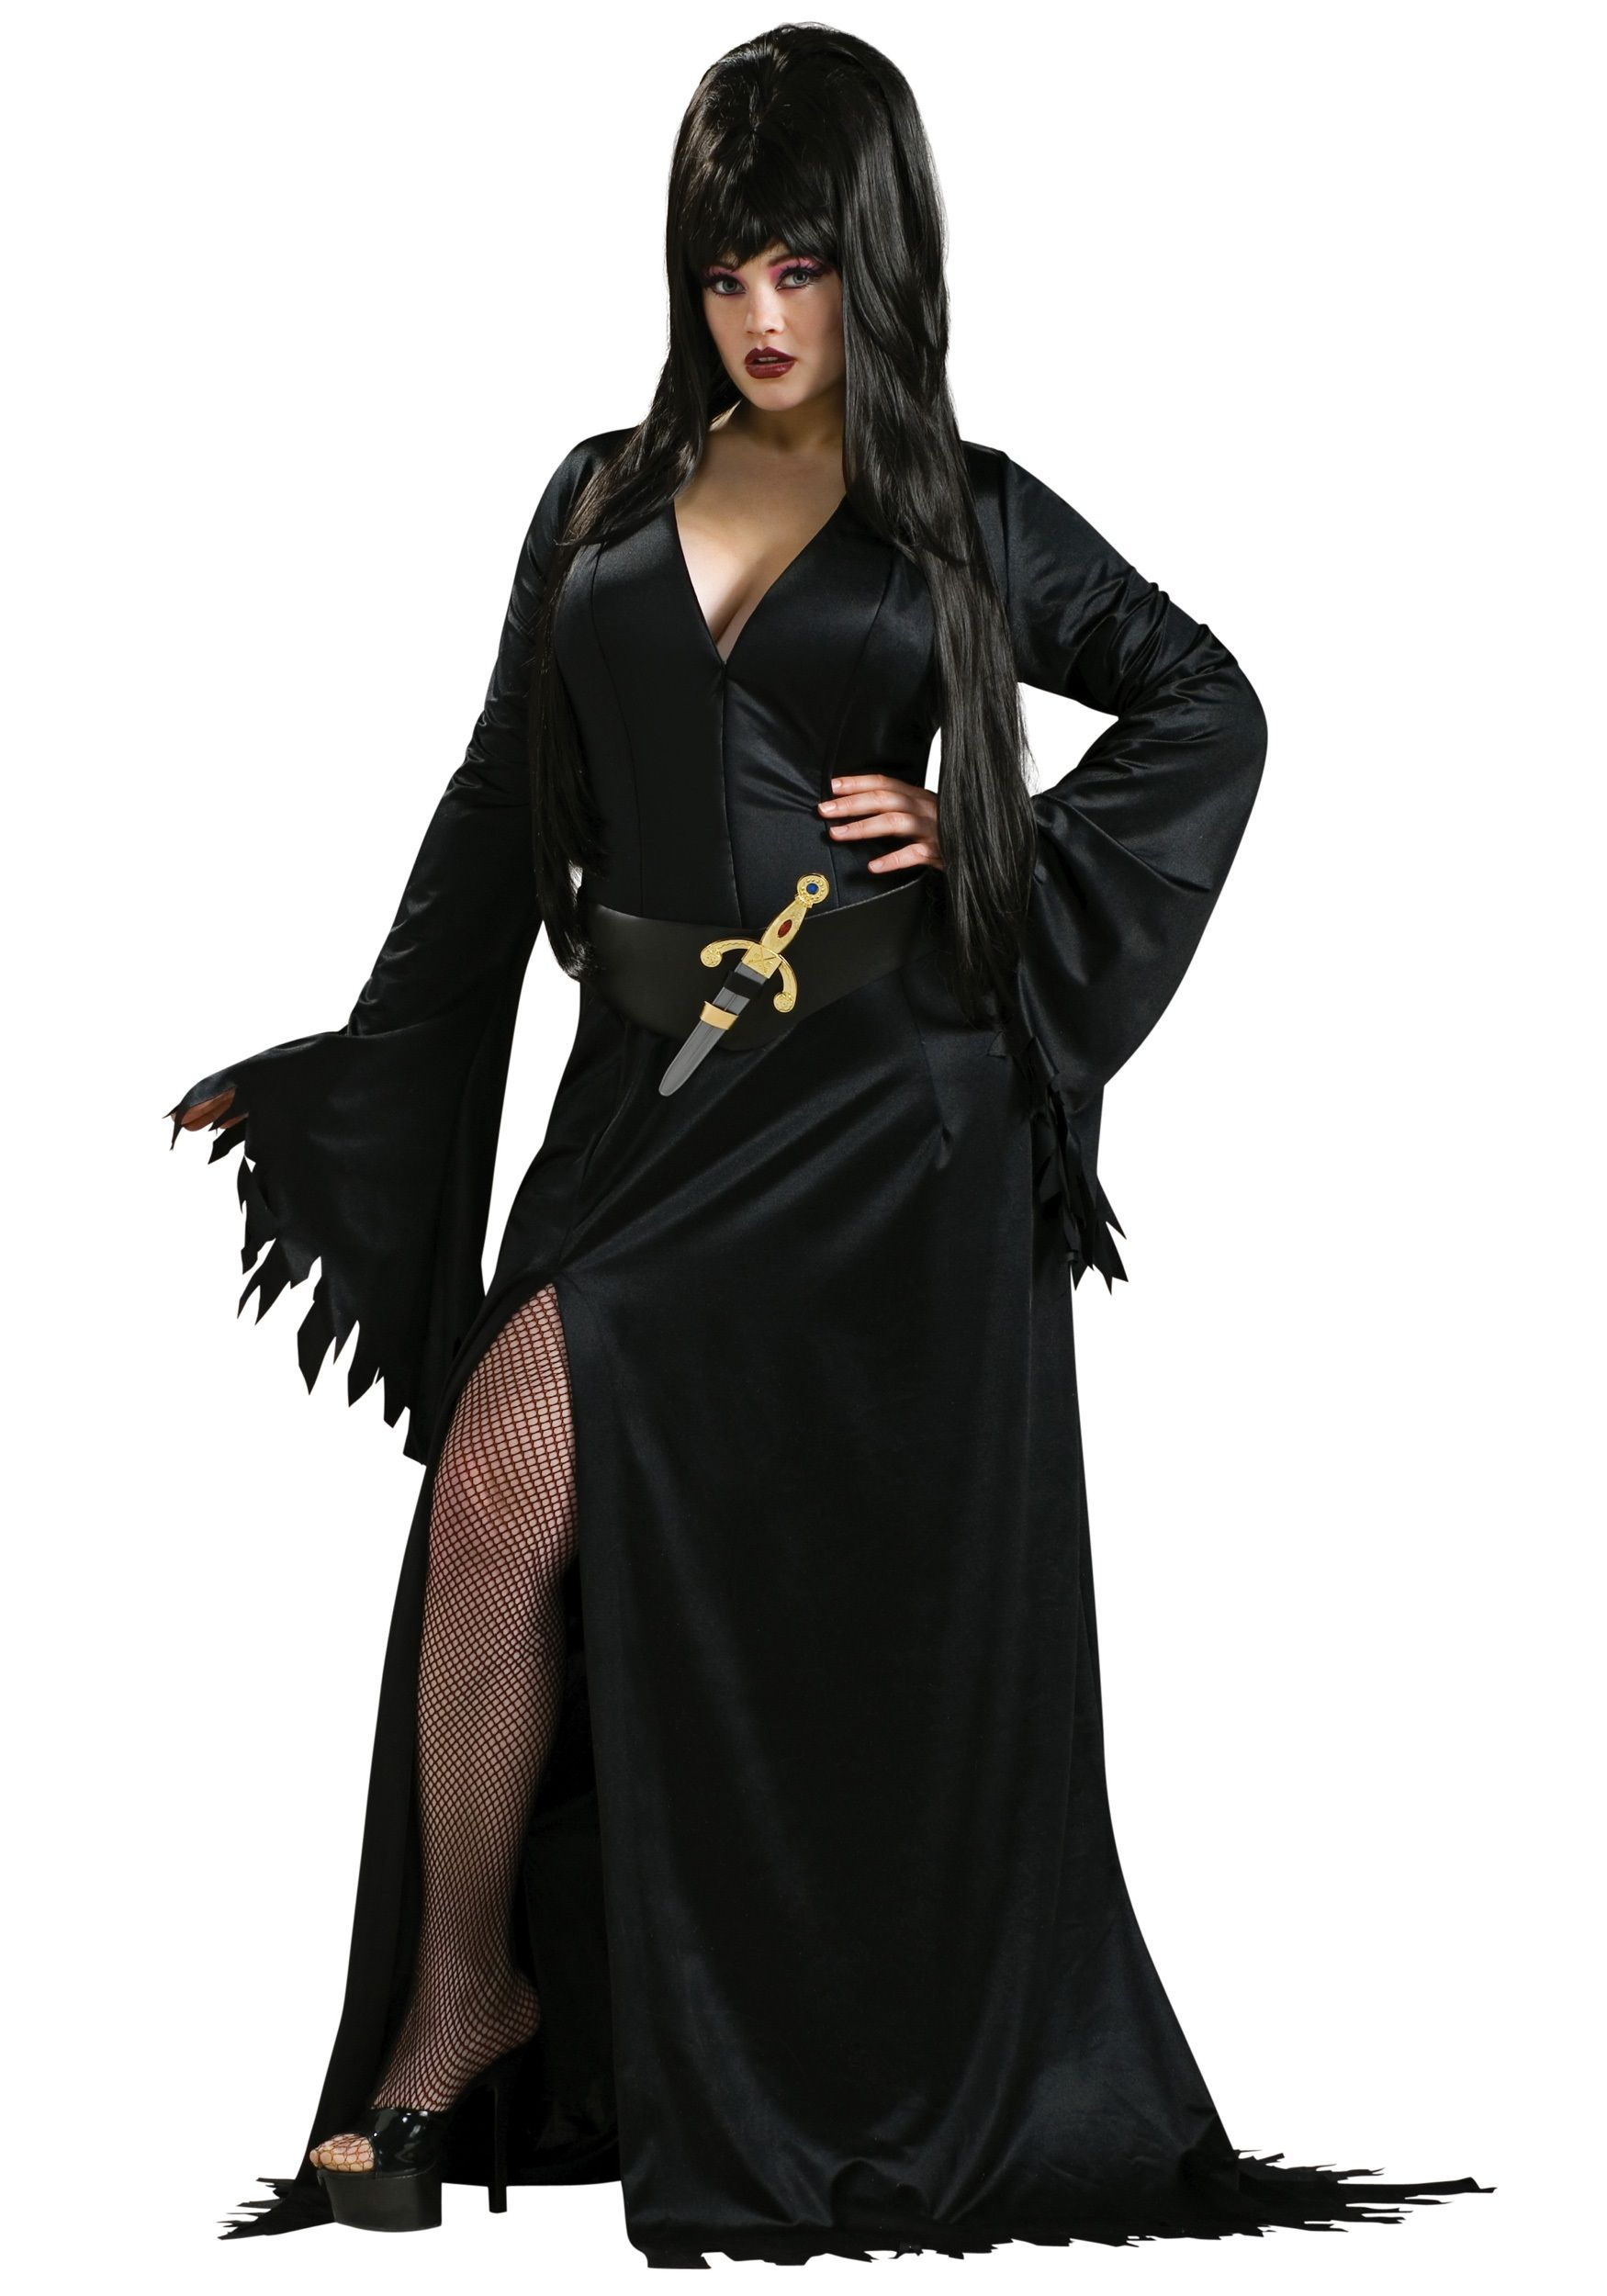 Plus Size Elvira Costume | Elvira costume, Costumes and Halloween ...